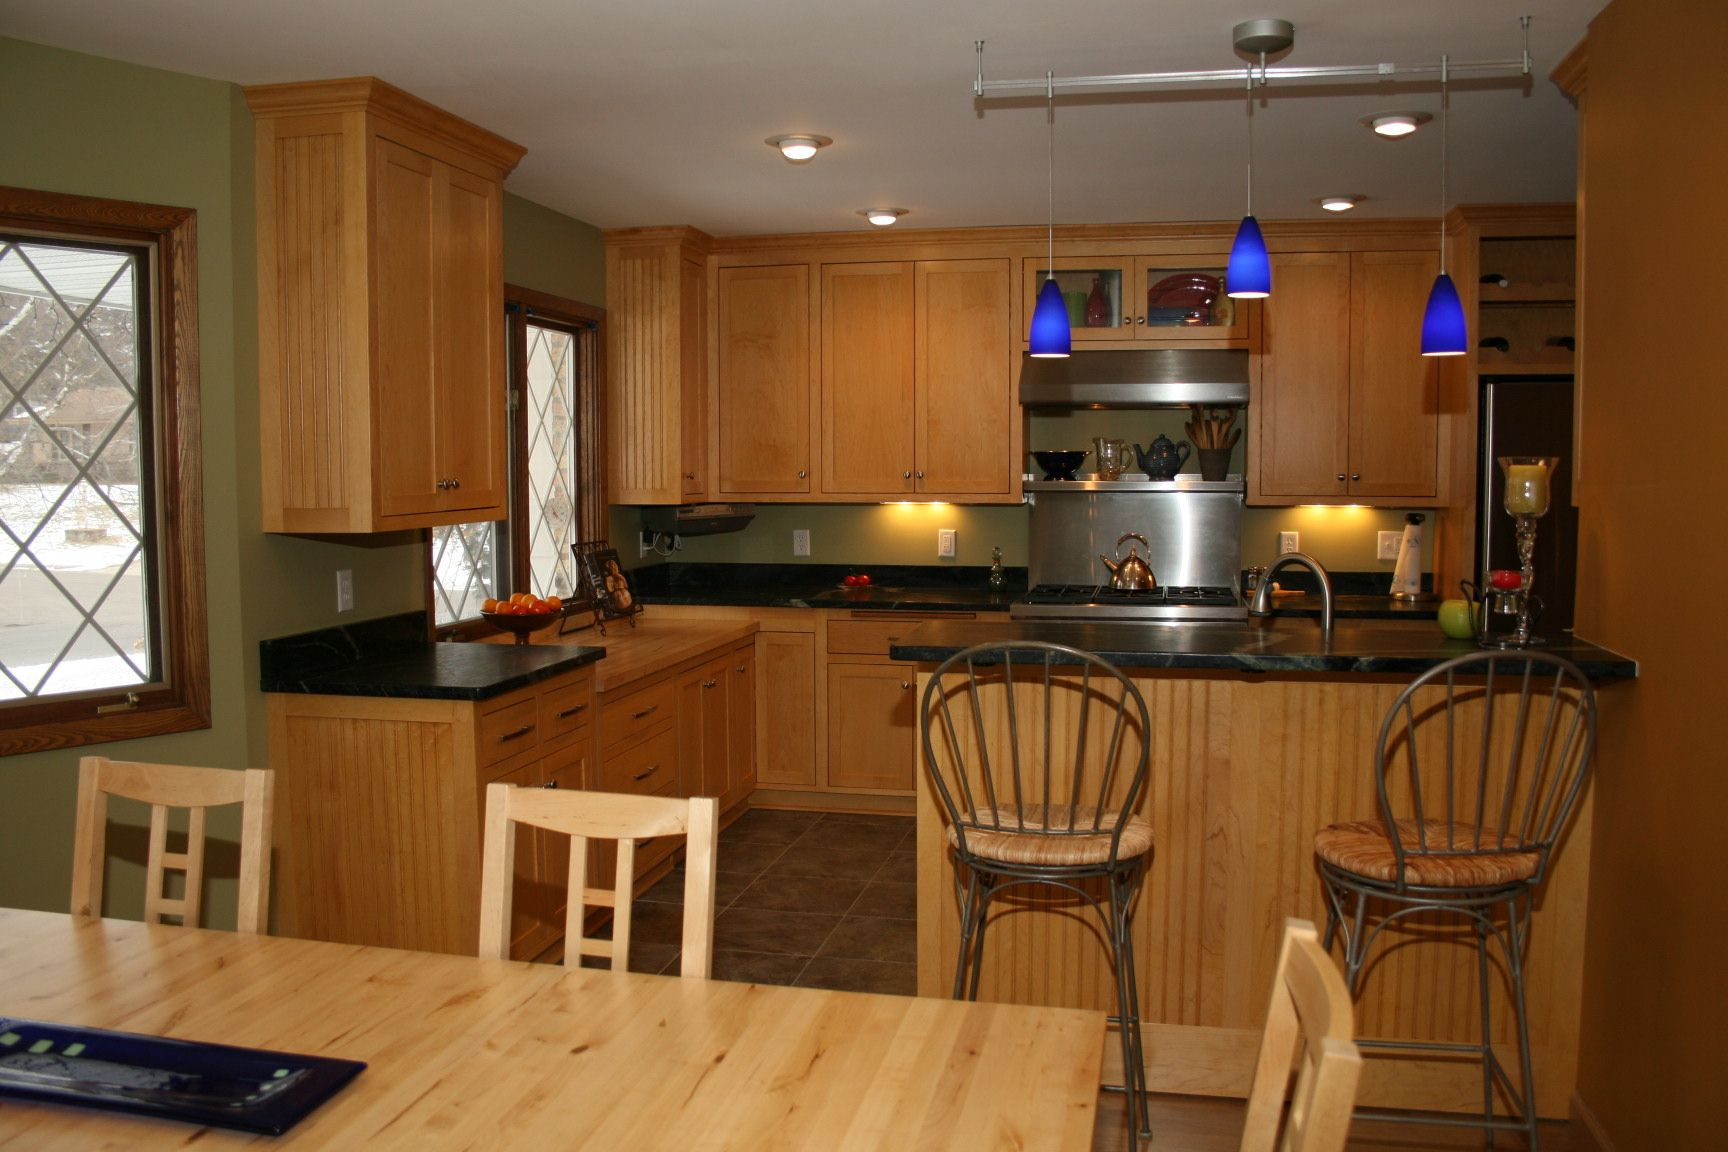 Real Wood Kitchen Cabinets Costco Rug For Under Table Image Result Blue Maple | ...